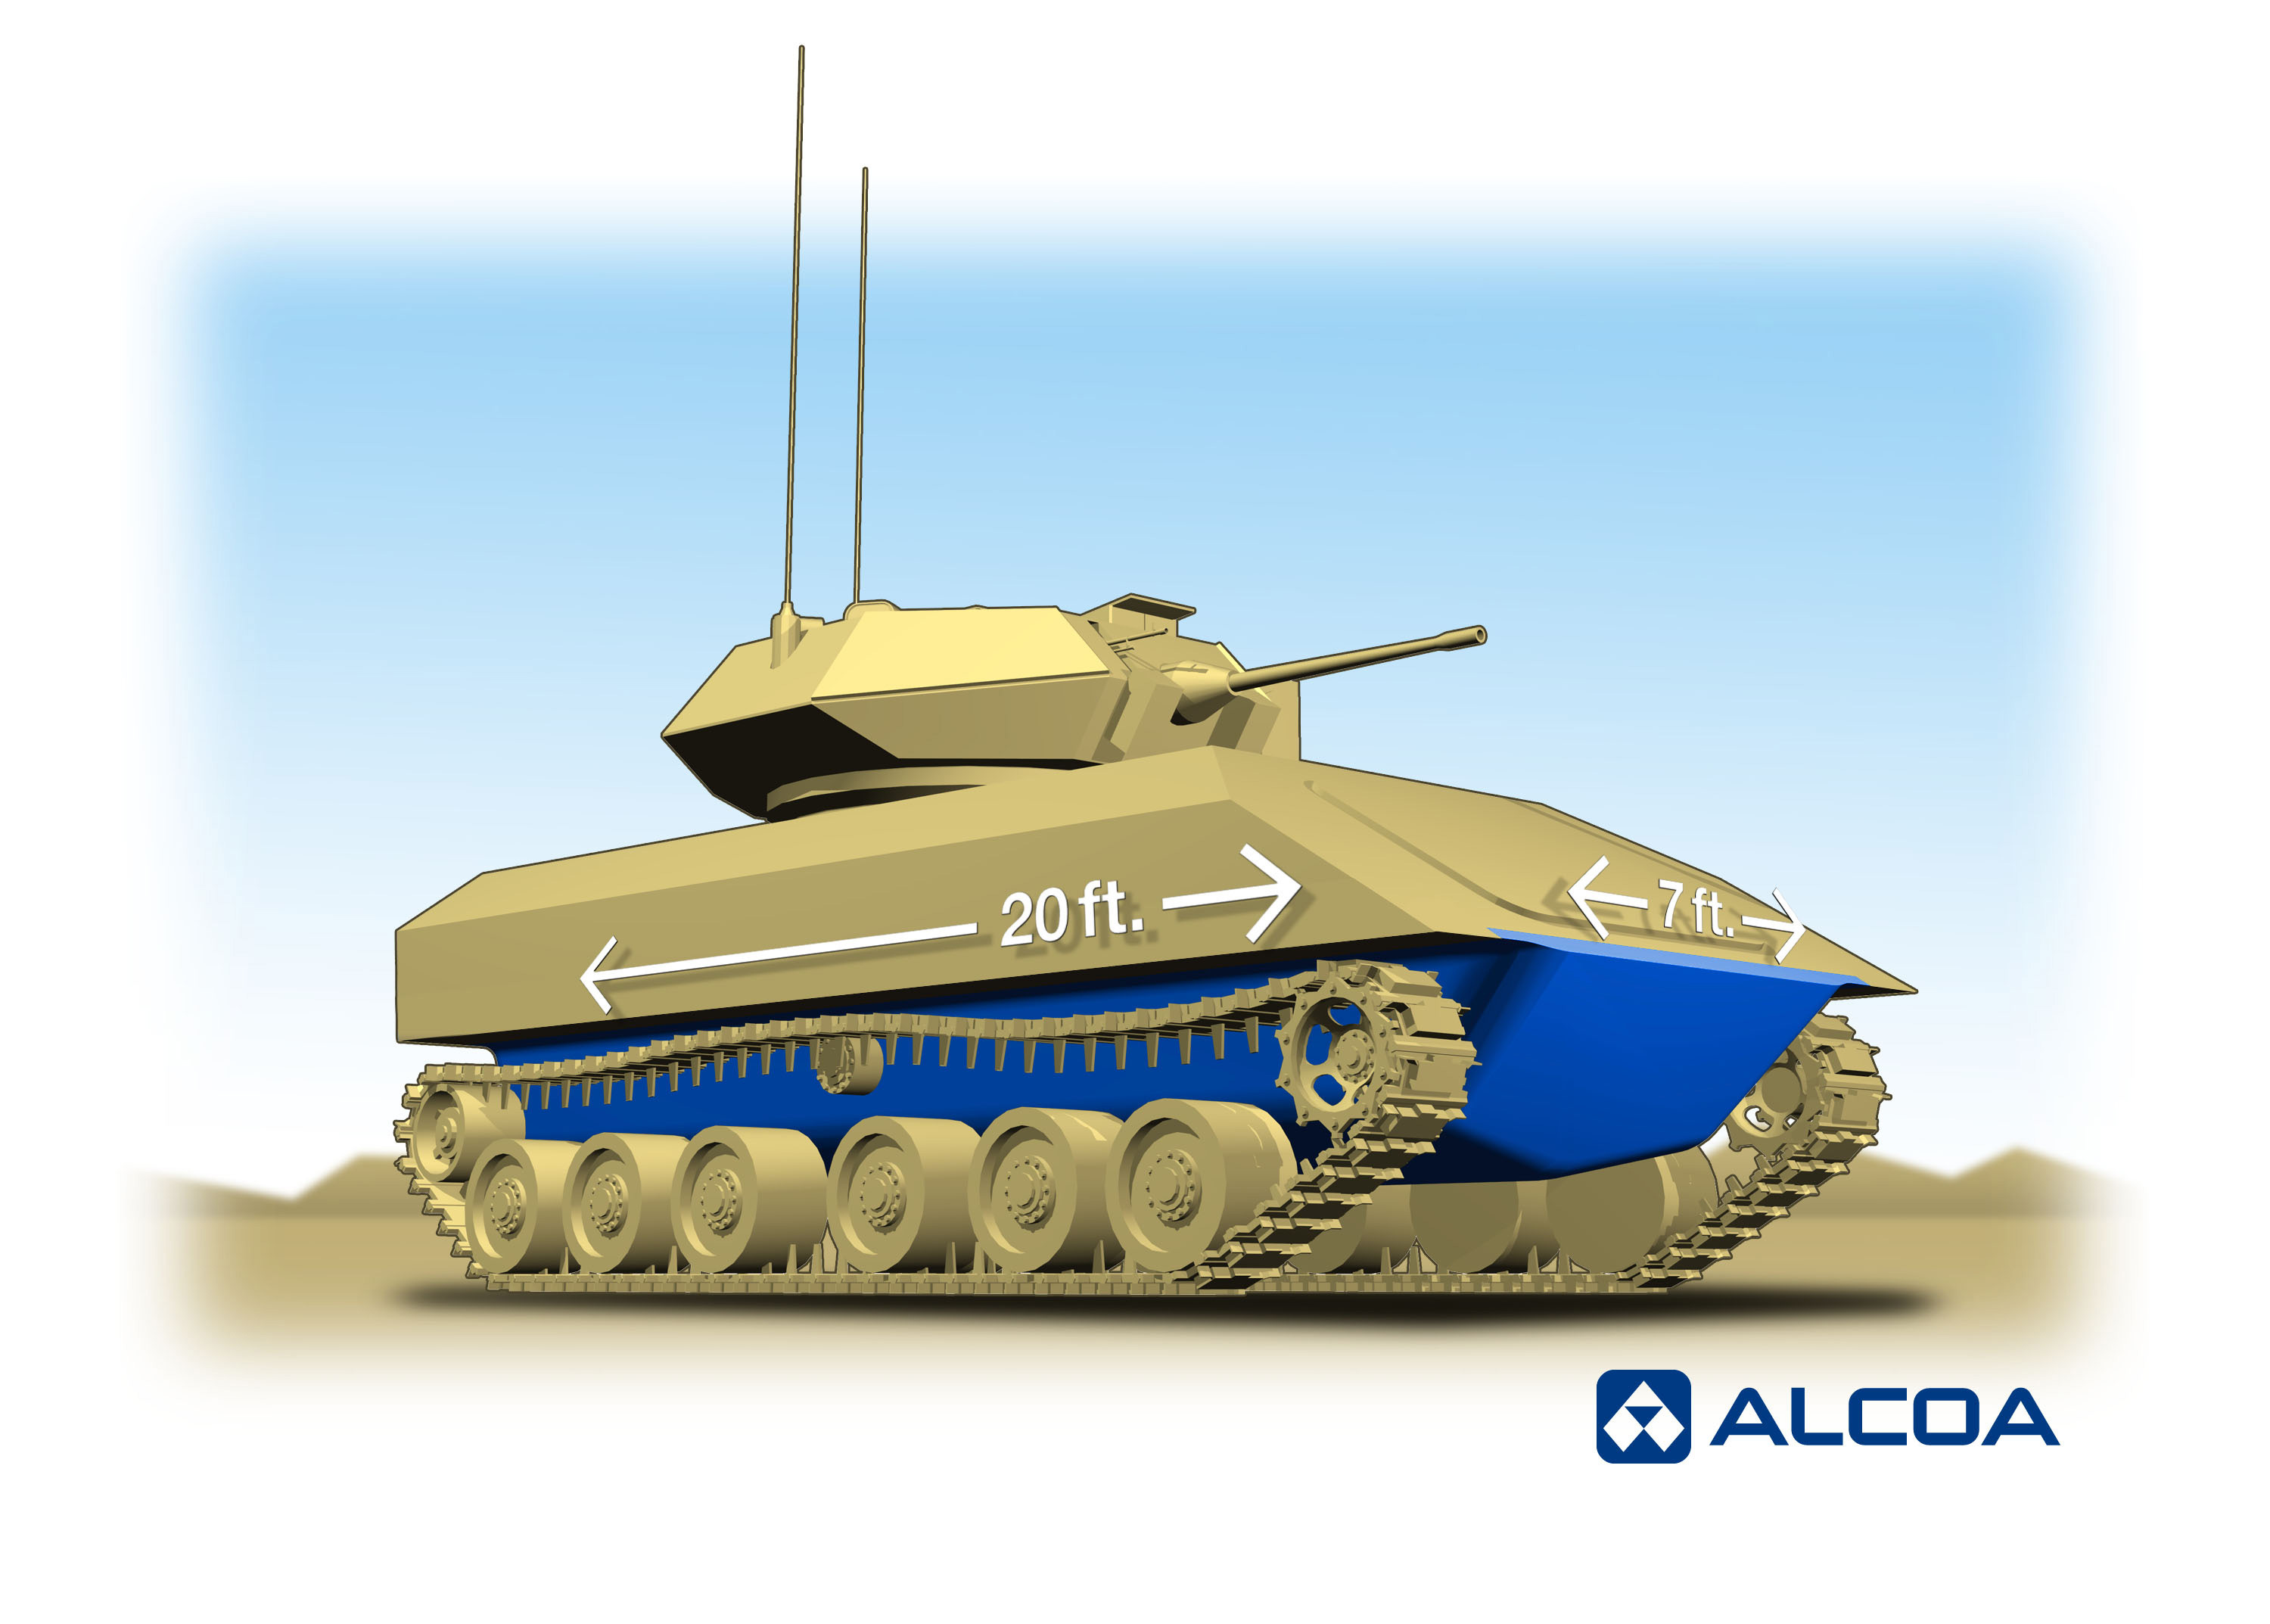 Alcoa and the U.S. Army Research Laboratory have launched a cooperative effort to develop the world's largest single-piece aluminum hull for ground combat vehicles, shown here, to improve the military's defense against a grave threat to soldier safety: Improvised Explosive Devices (IEDs). (Photo: Business Wire)